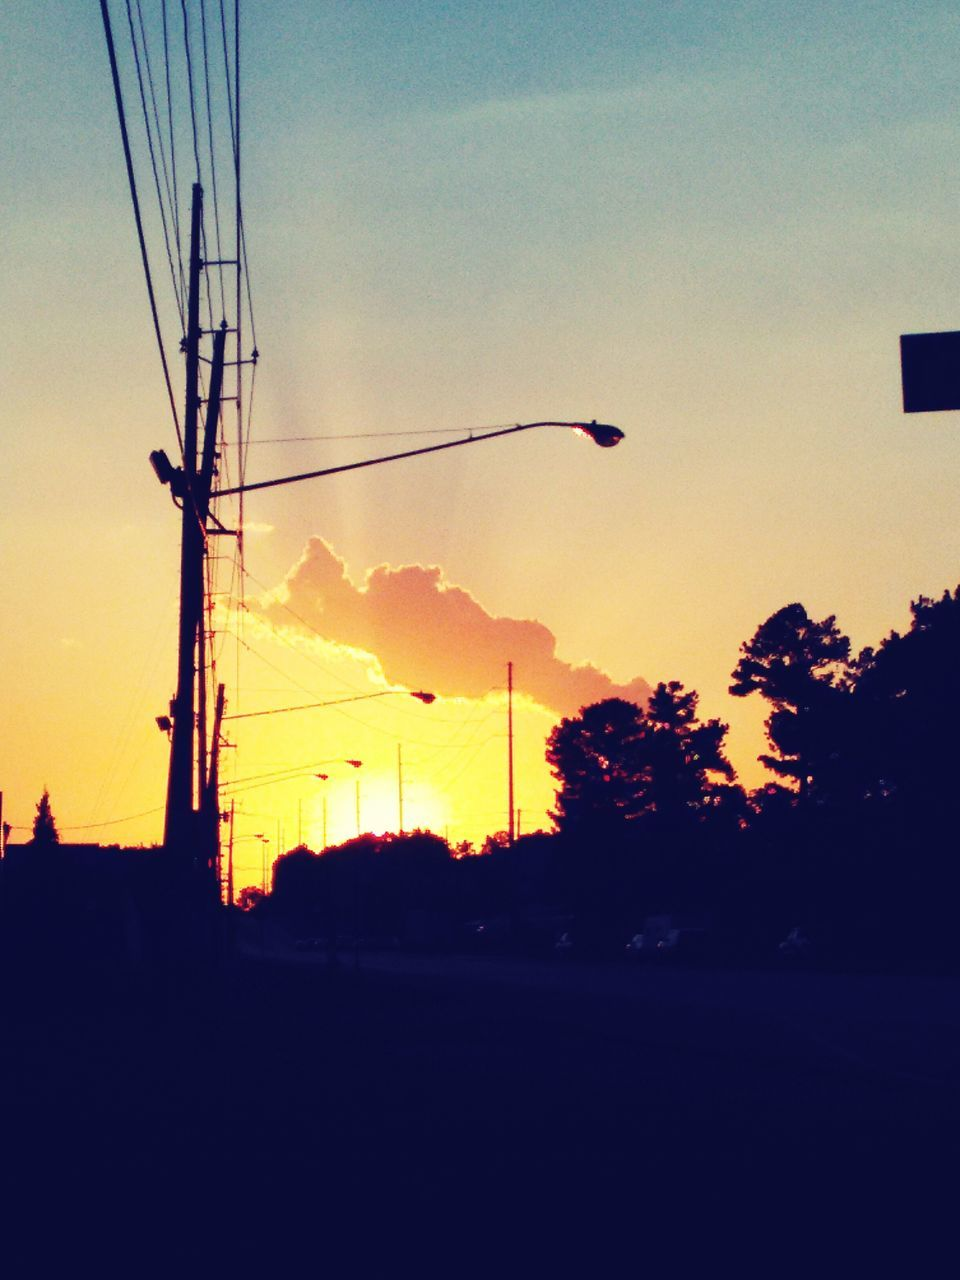 sunset, silhouette, sky, cable, nature, tree, outdoors, technology, no people, electricity pylon, beauty in nature, day